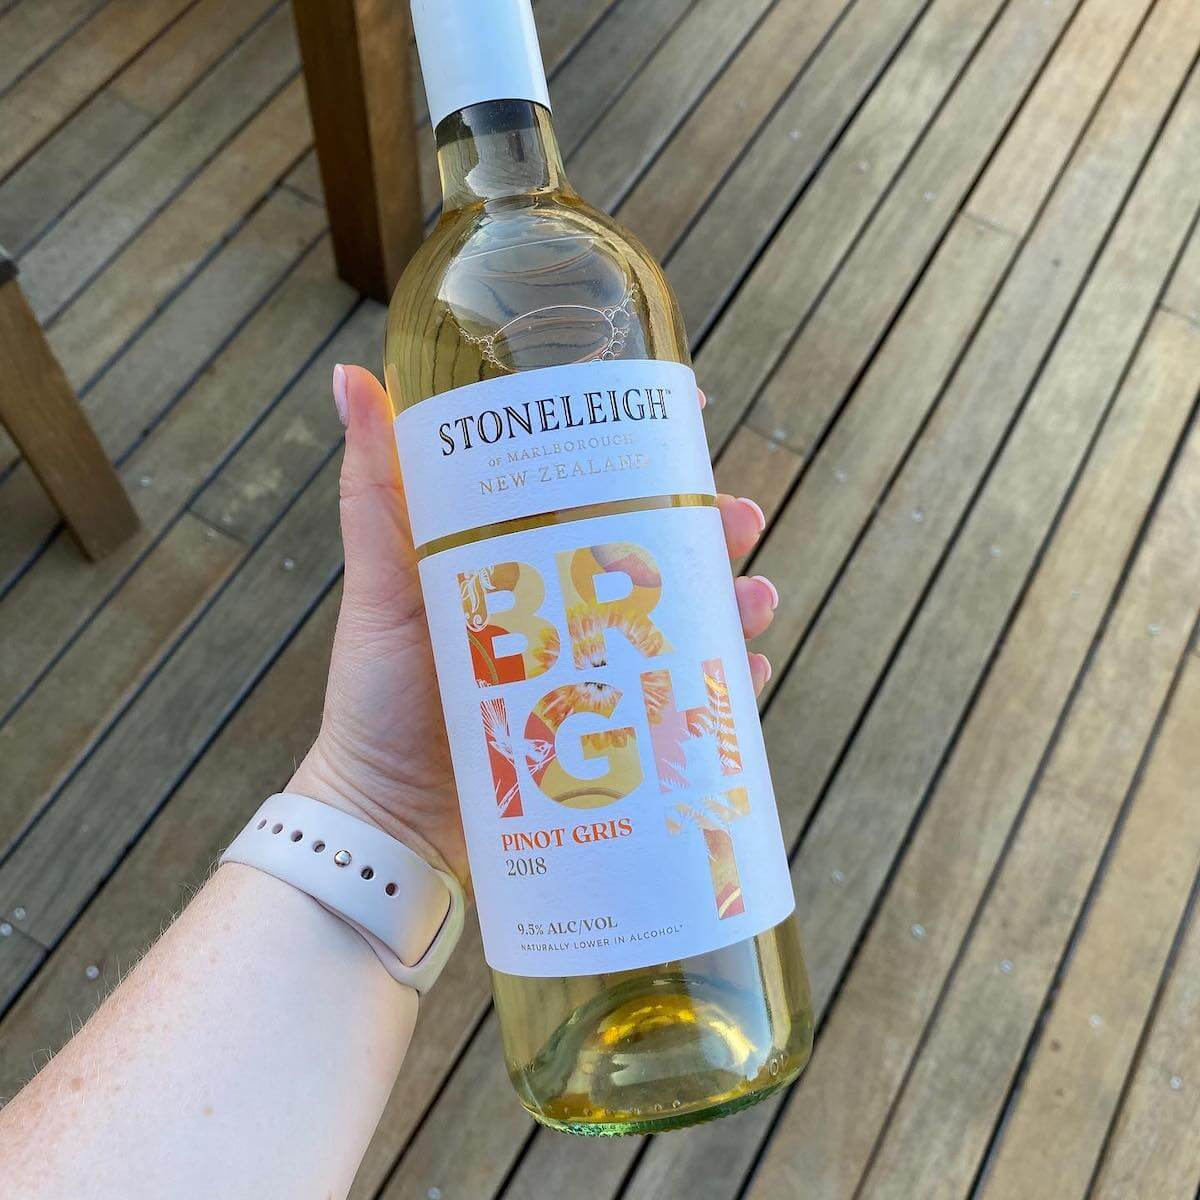 Stoneleigh Bright 2018 Pinot Gris - Lower in Alcohol Wine